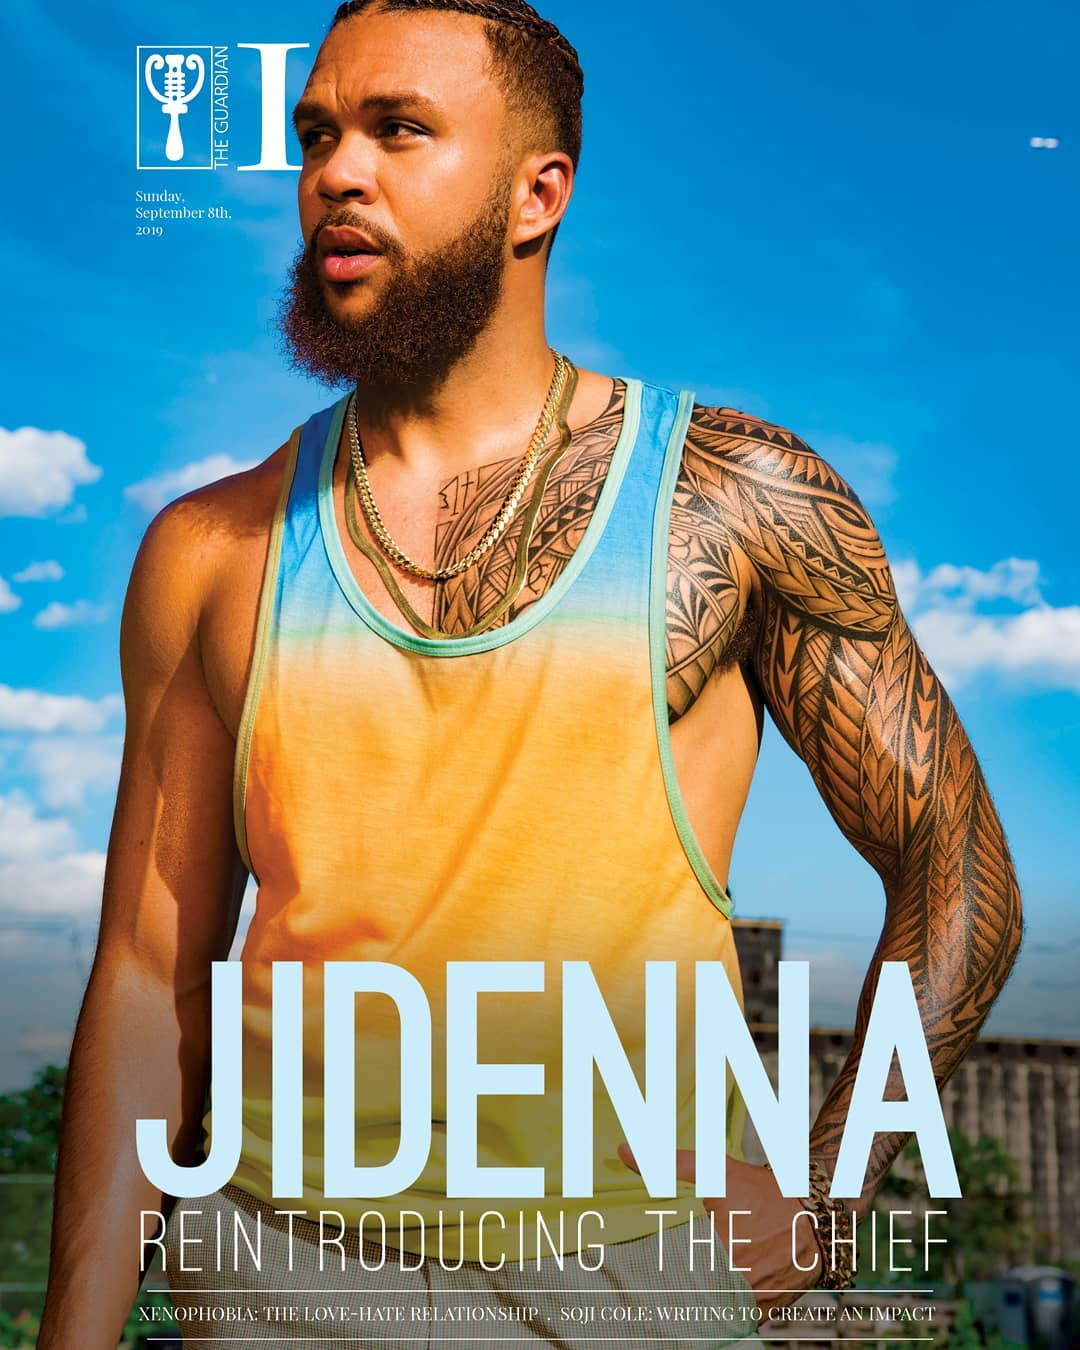 Reintroducing The Chief! Jidenna Covers Guardian Life Magazine's Latest Issue